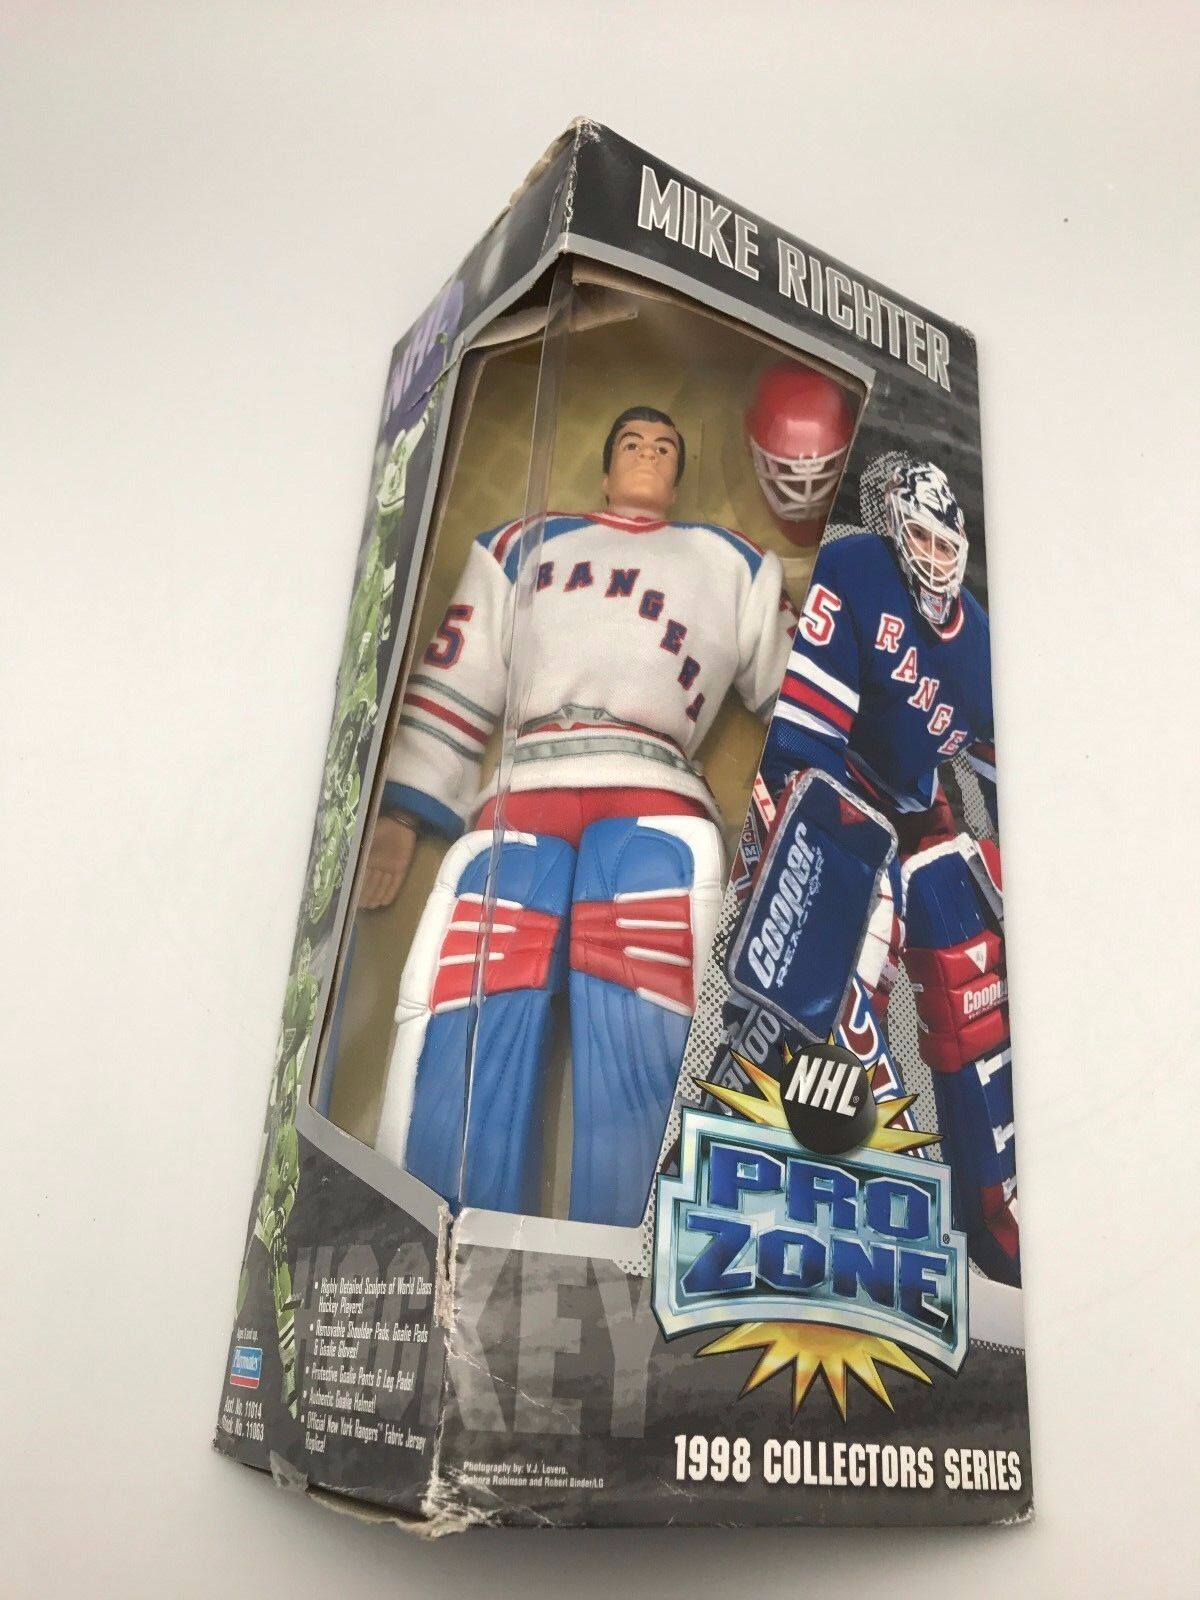 NHL PRO ZONE New York Rangers MIKE RICHTER 1998 Collectors Series